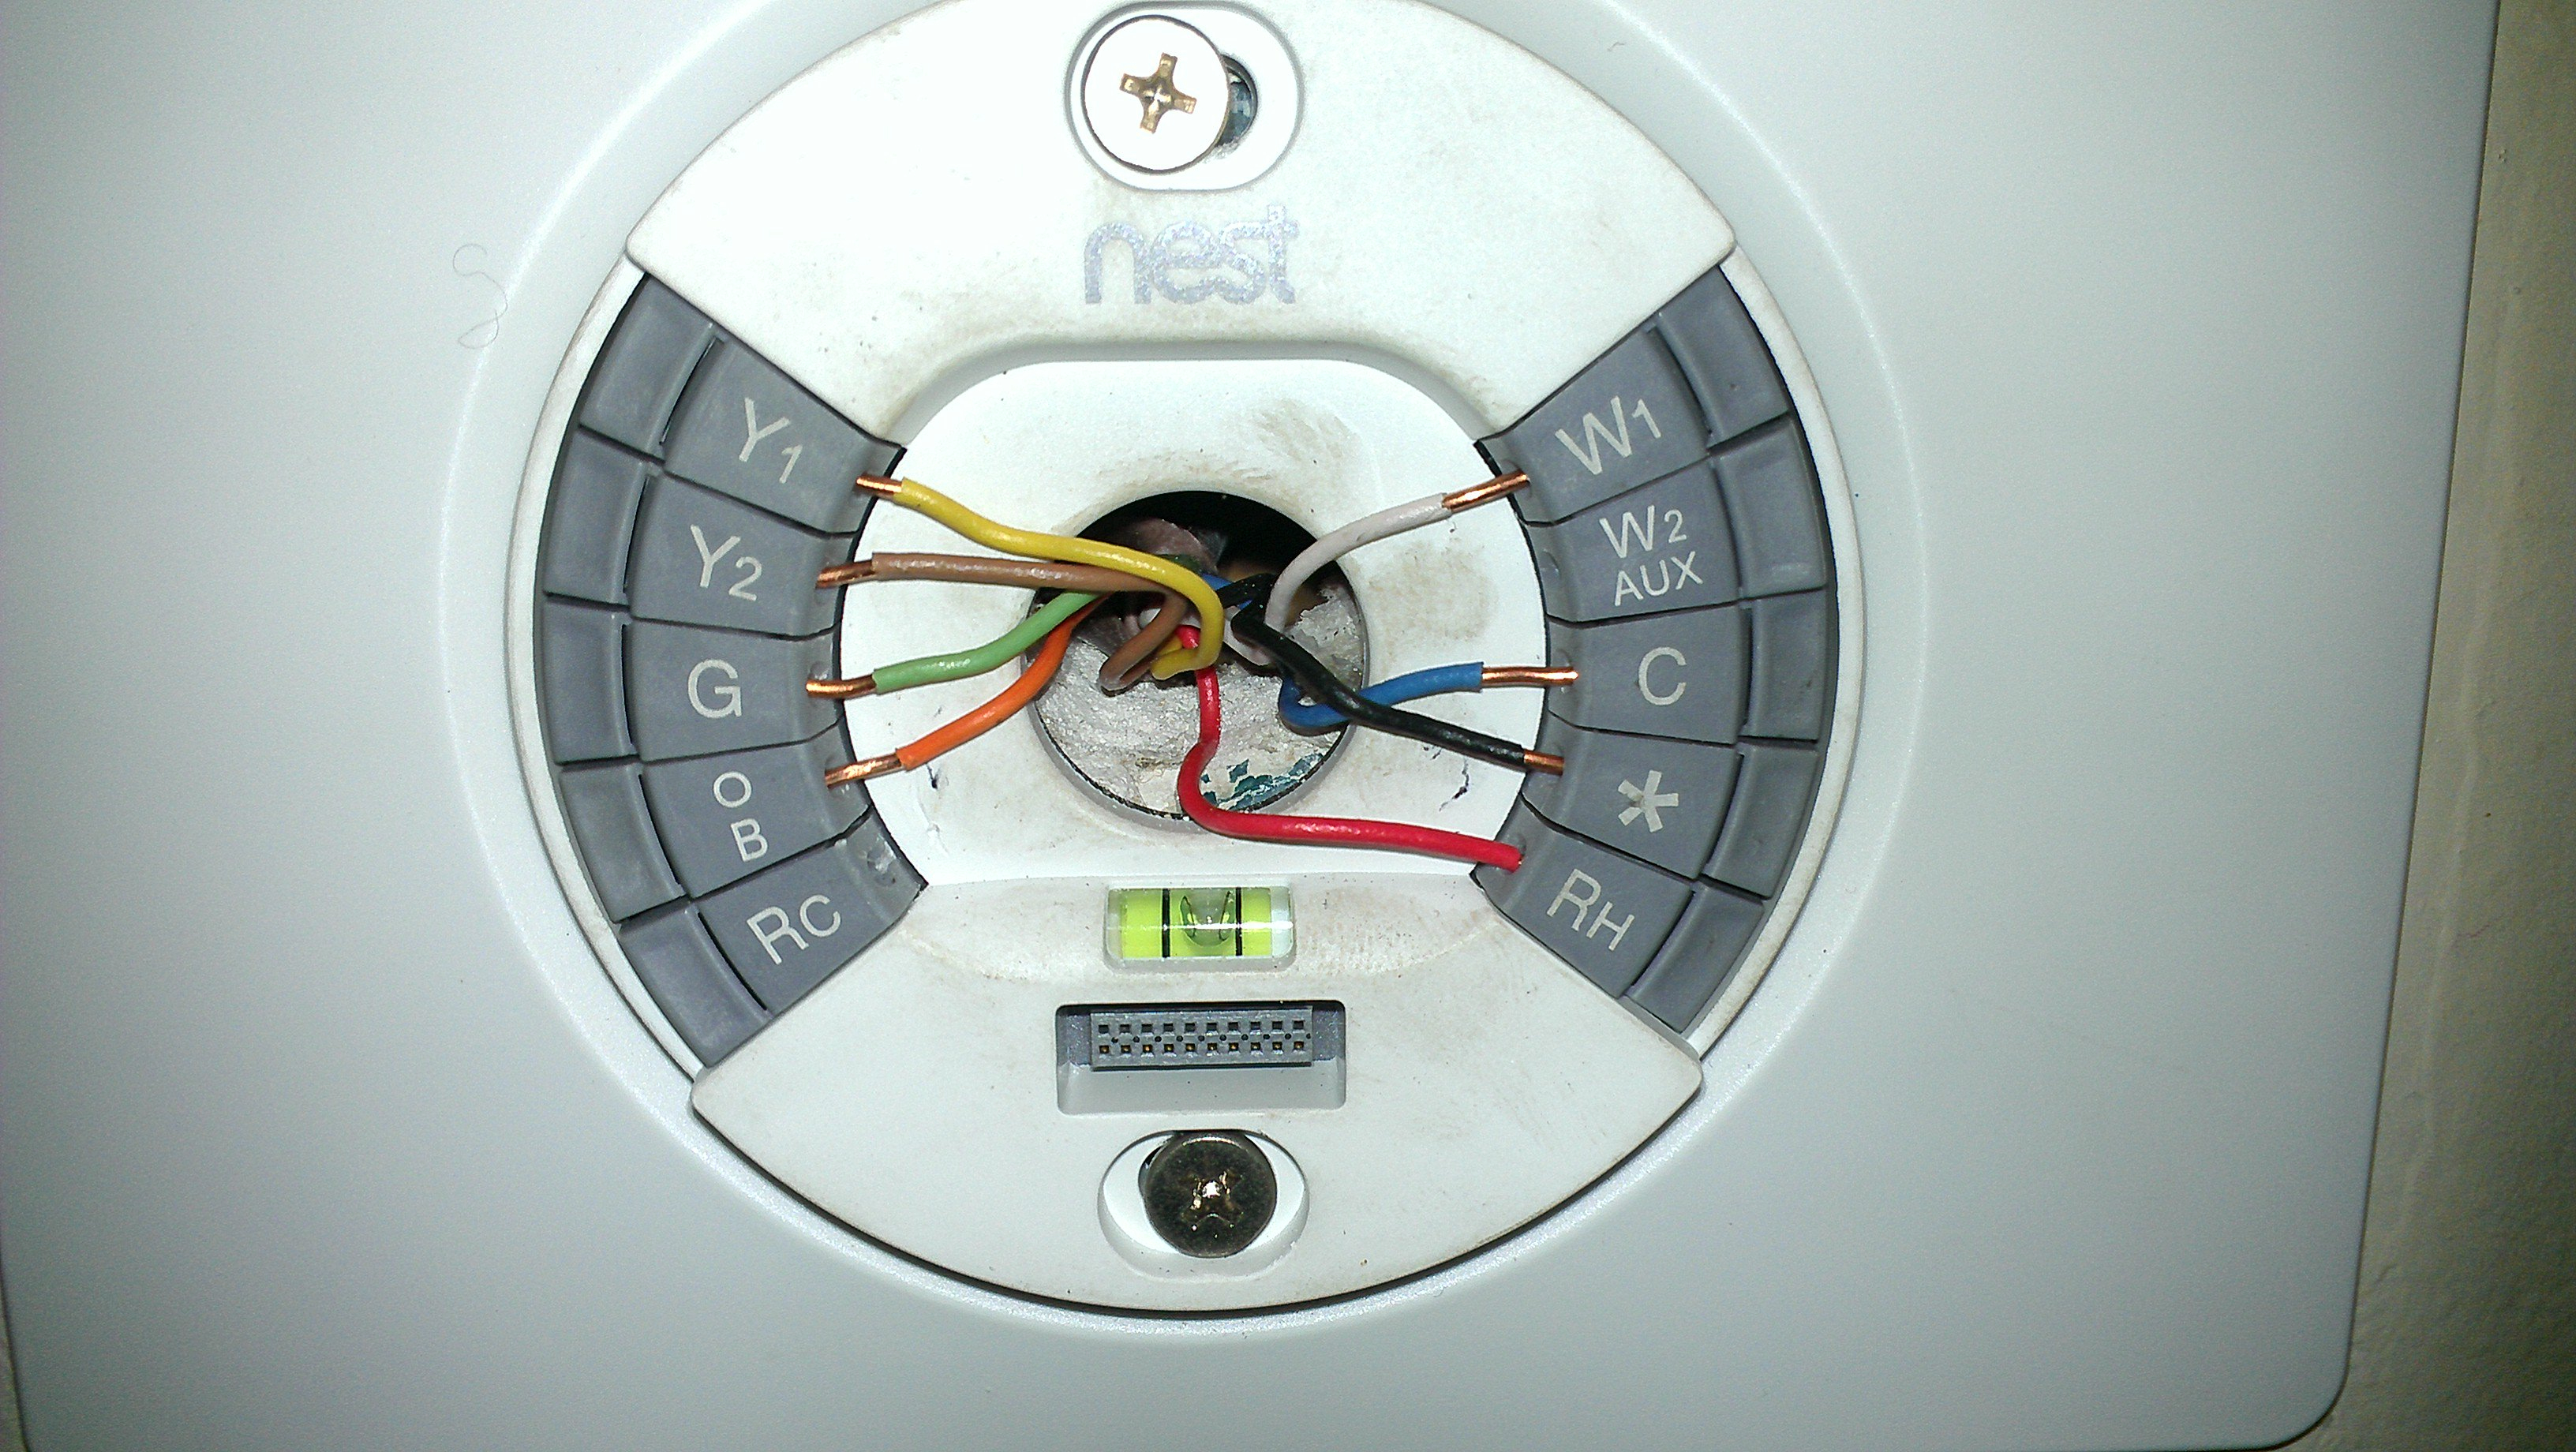 Trane Thermostat Wiring Color Code